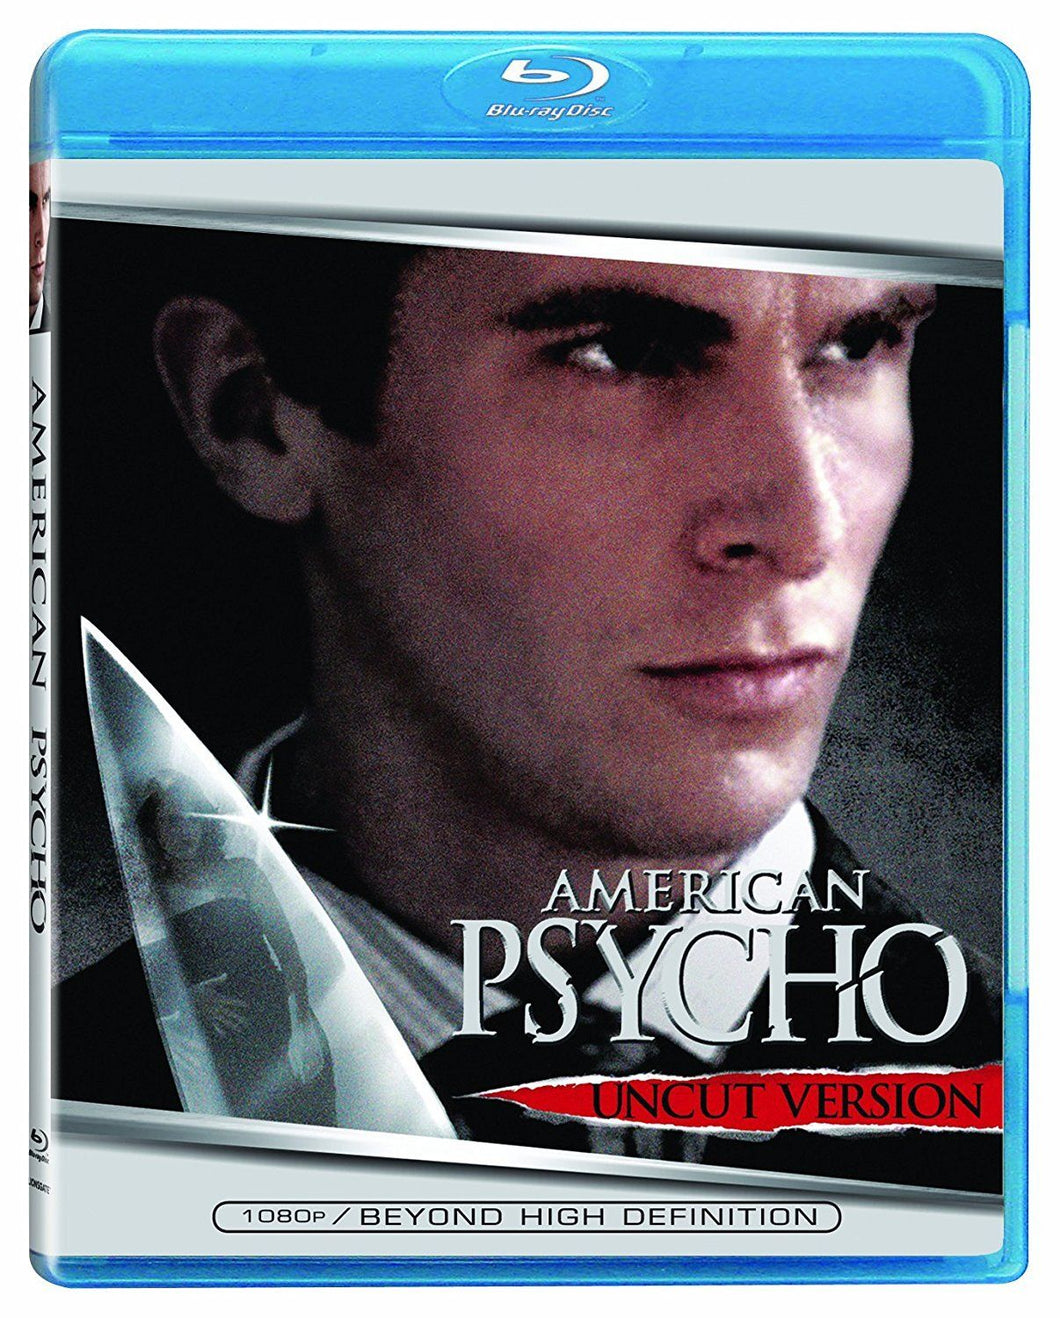 USED-American Psycho: Uncut Version (Blu-Ray, 2007)